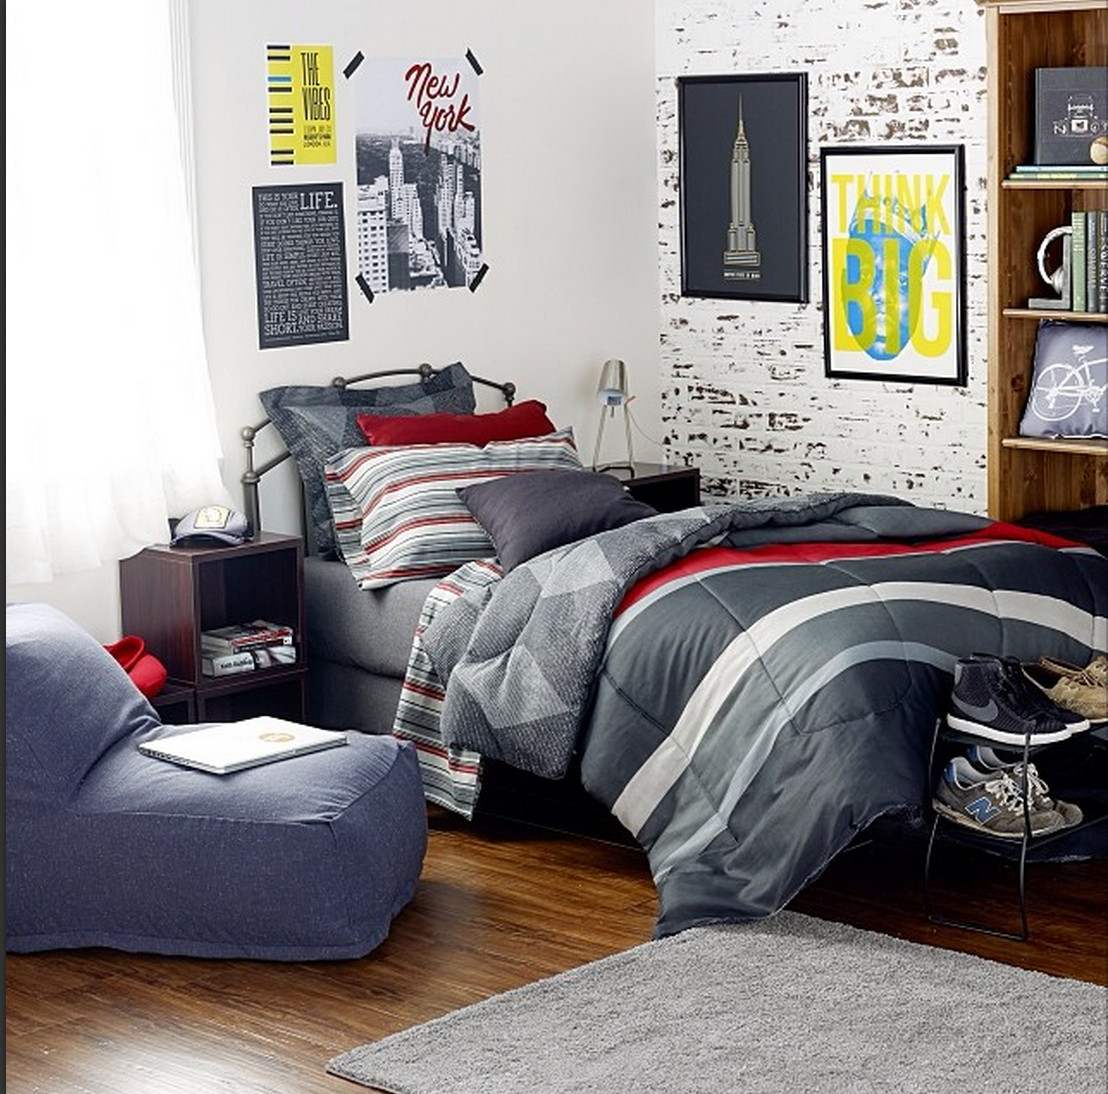 Bedroom Set for Men New Dormify for Guys Love This Dormified Dorm Room for Your